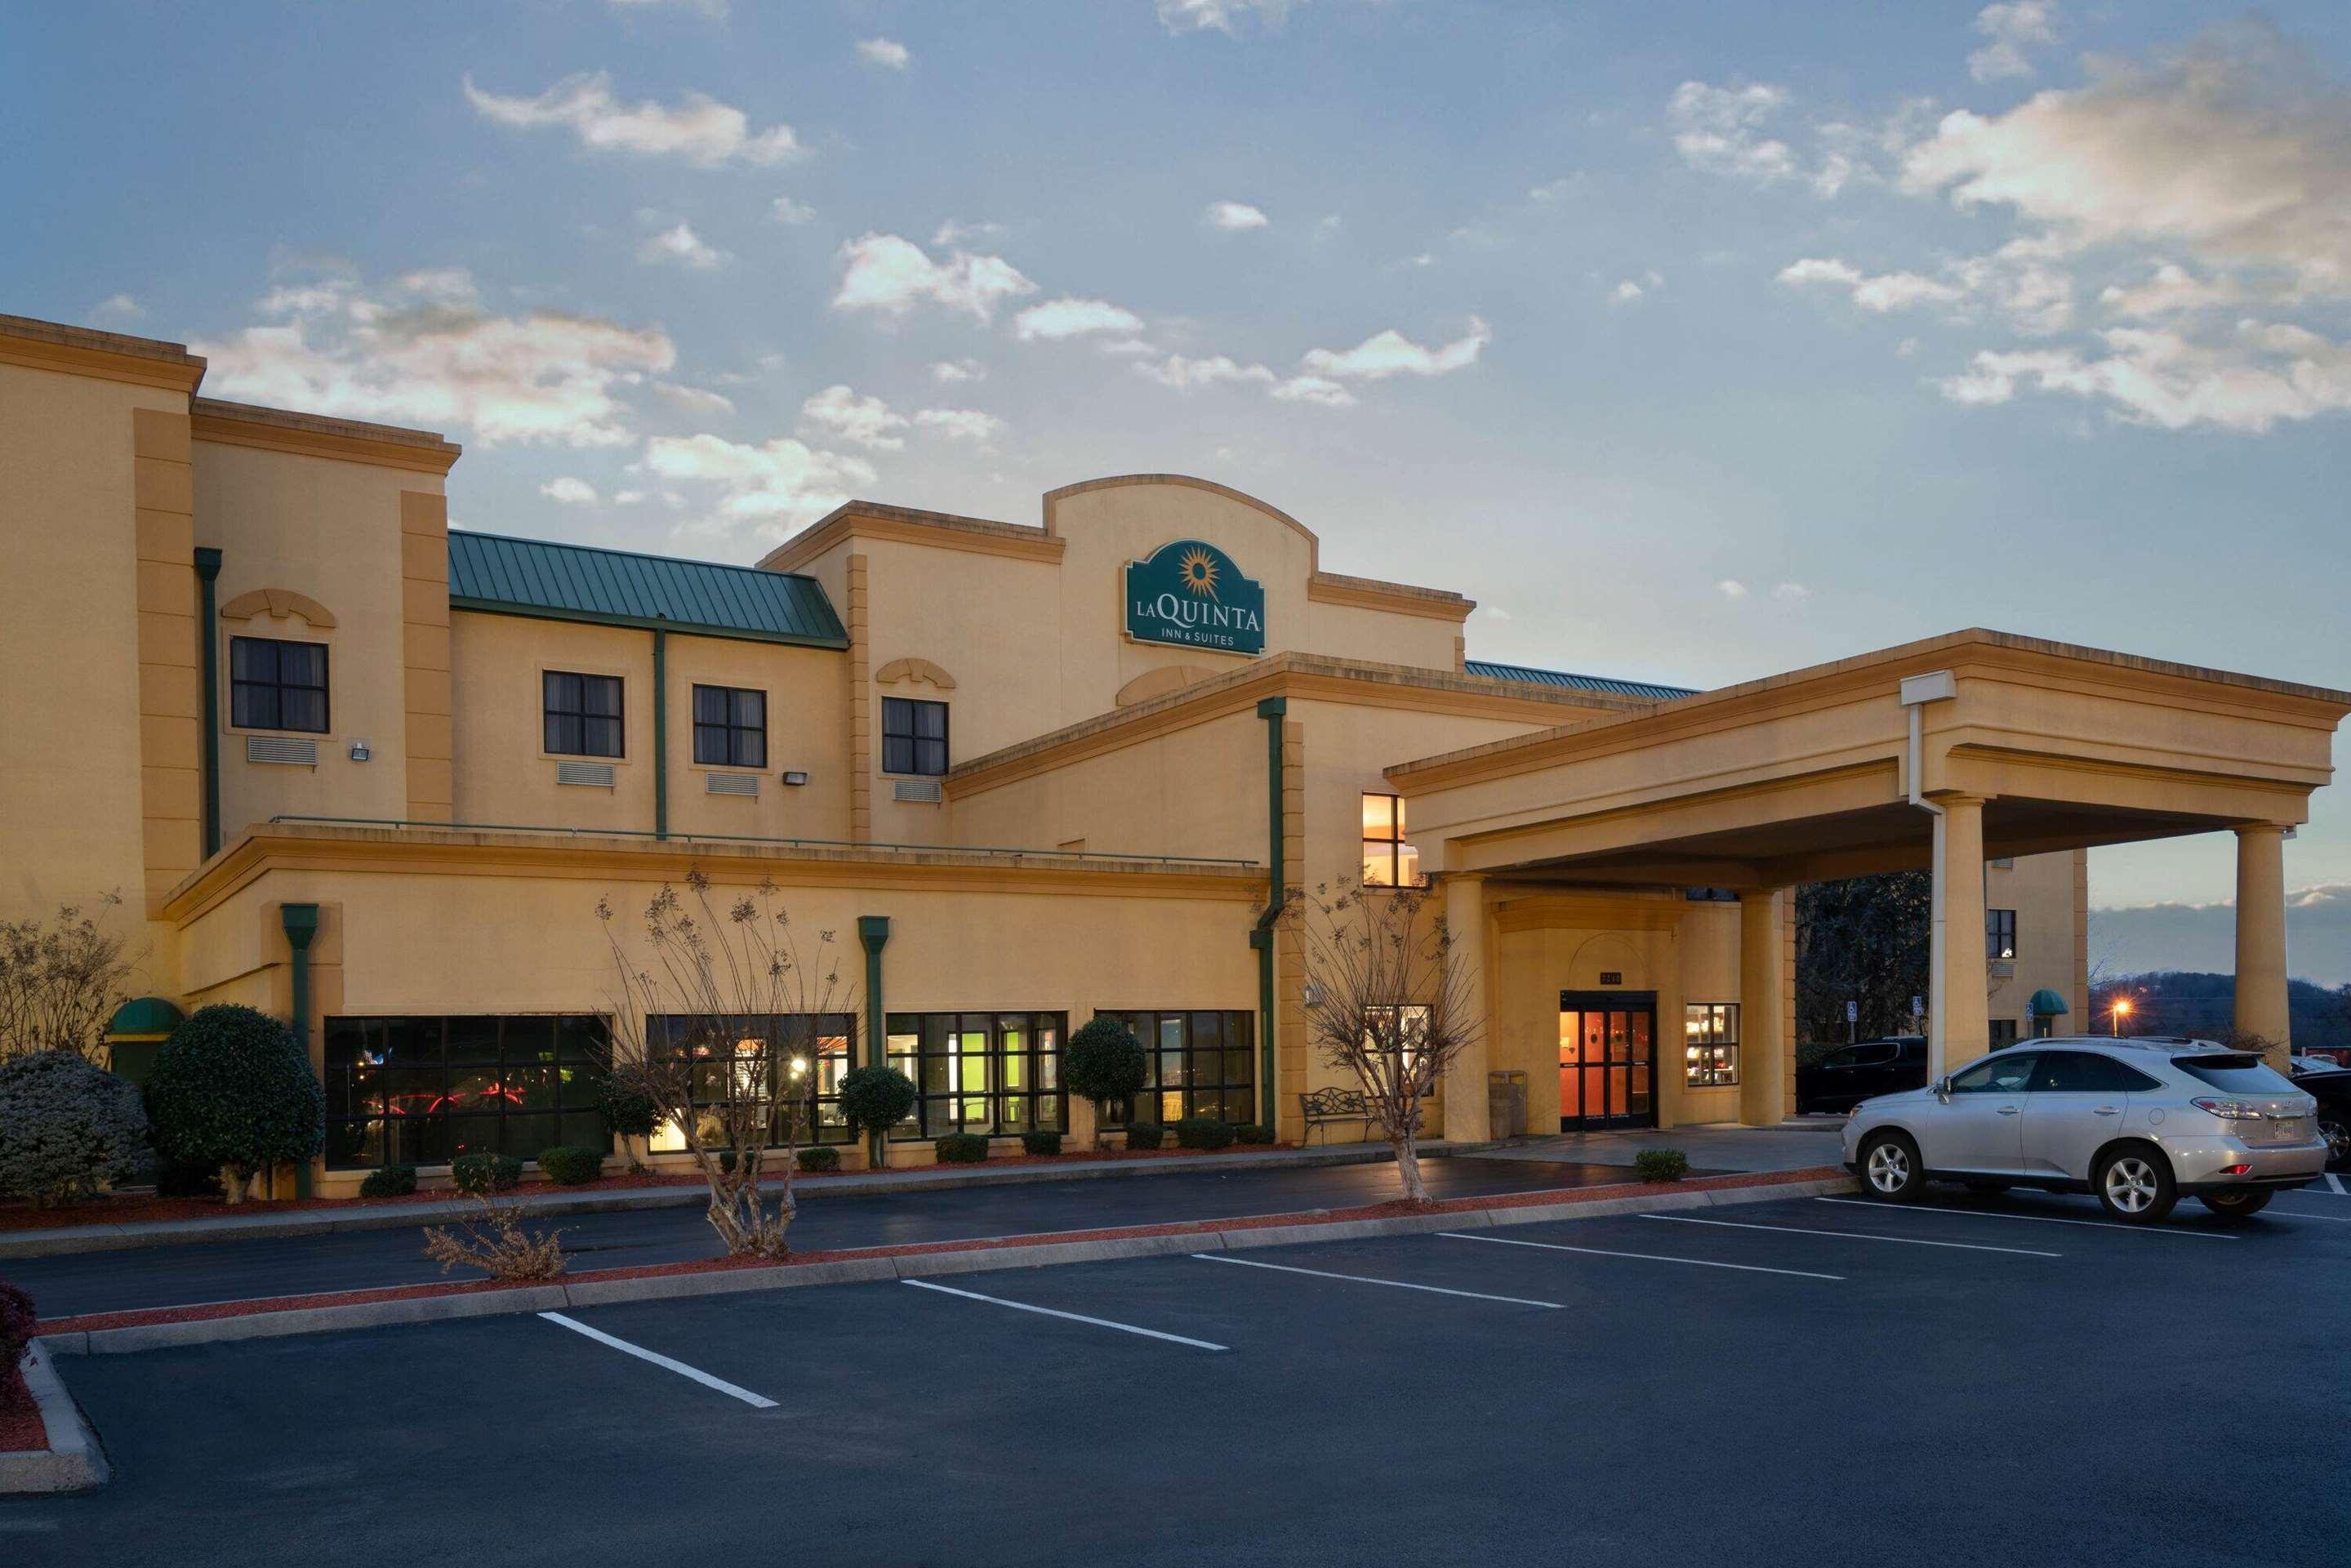 La Quinta Inn & Suites by Wyndham Knoxville East